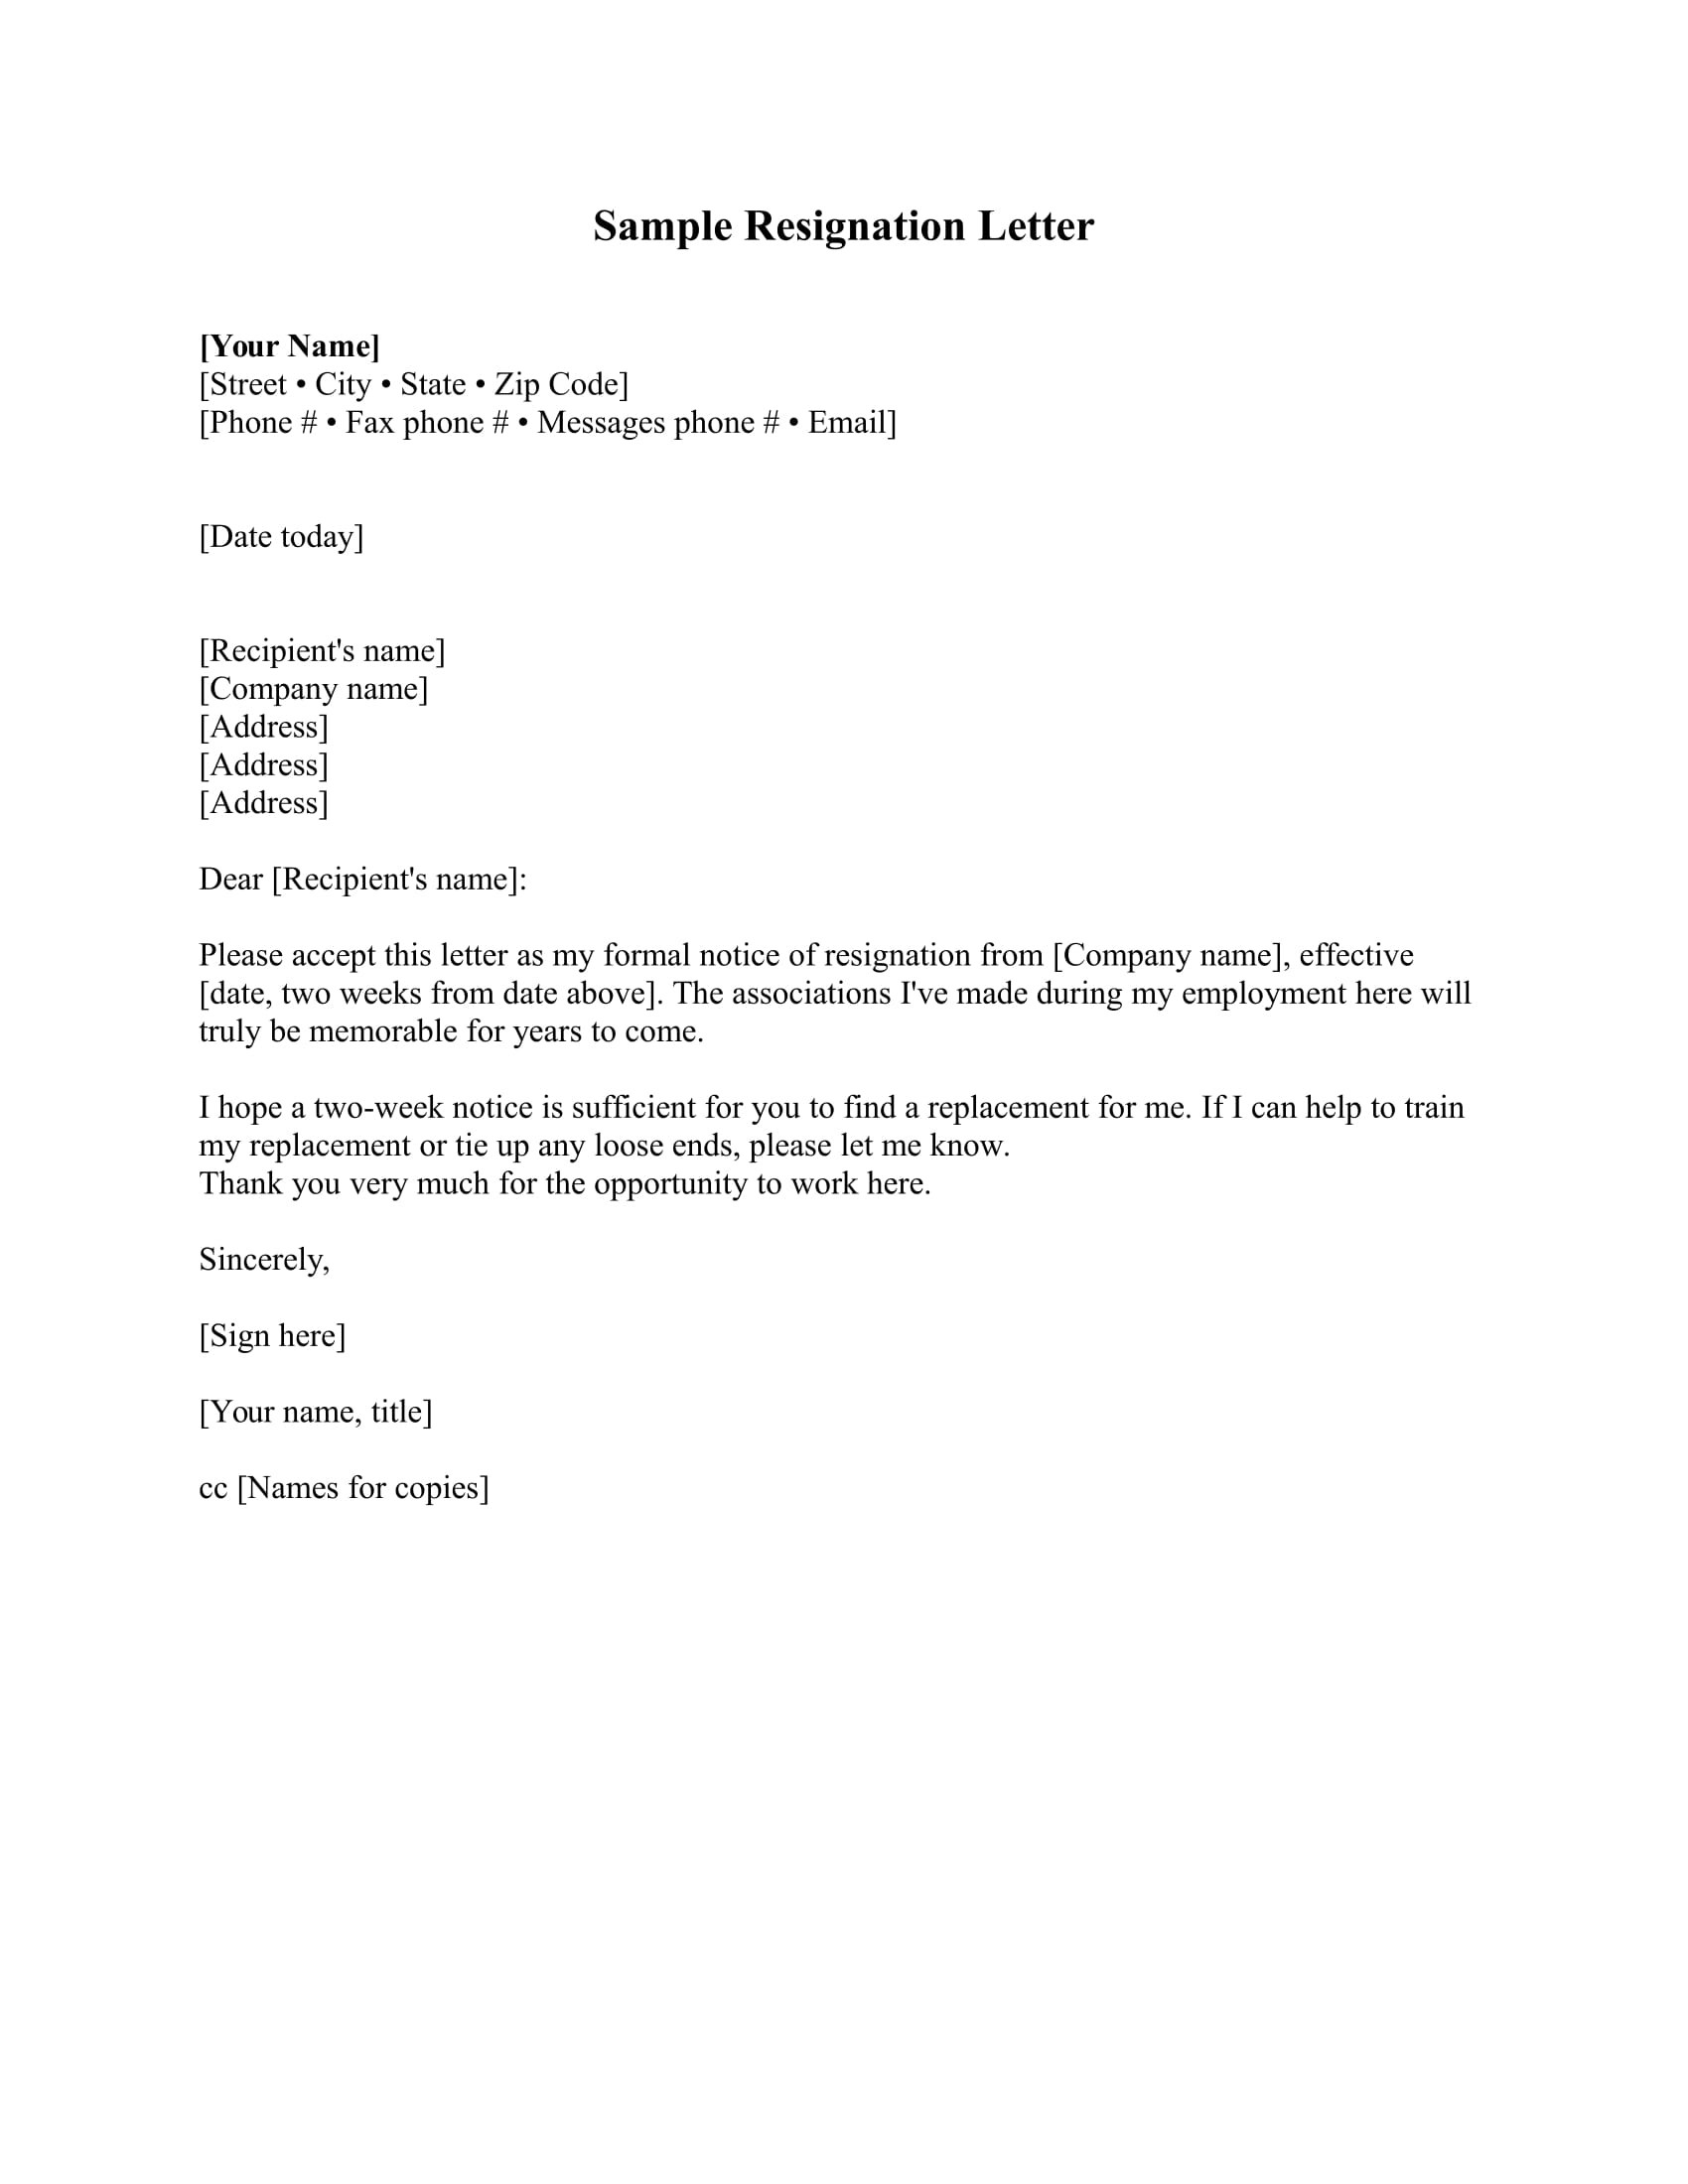 quitting job letter template 17+ Free Resignation Letter - PDF, DOC | Examples